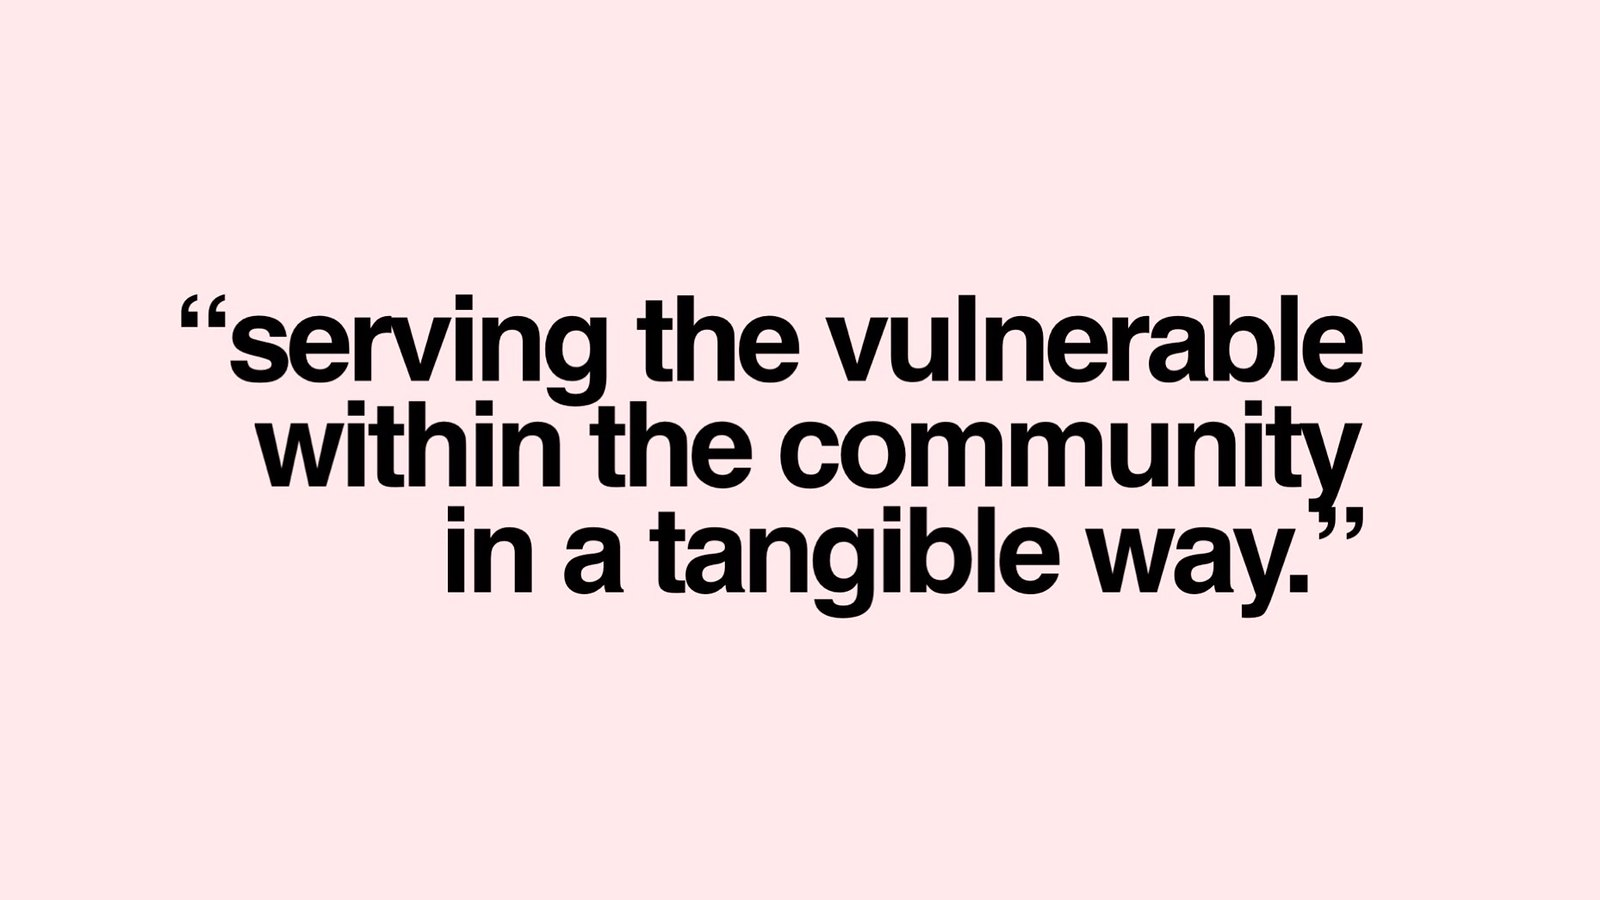 Serving the vulnerable within the community in a tangible way.